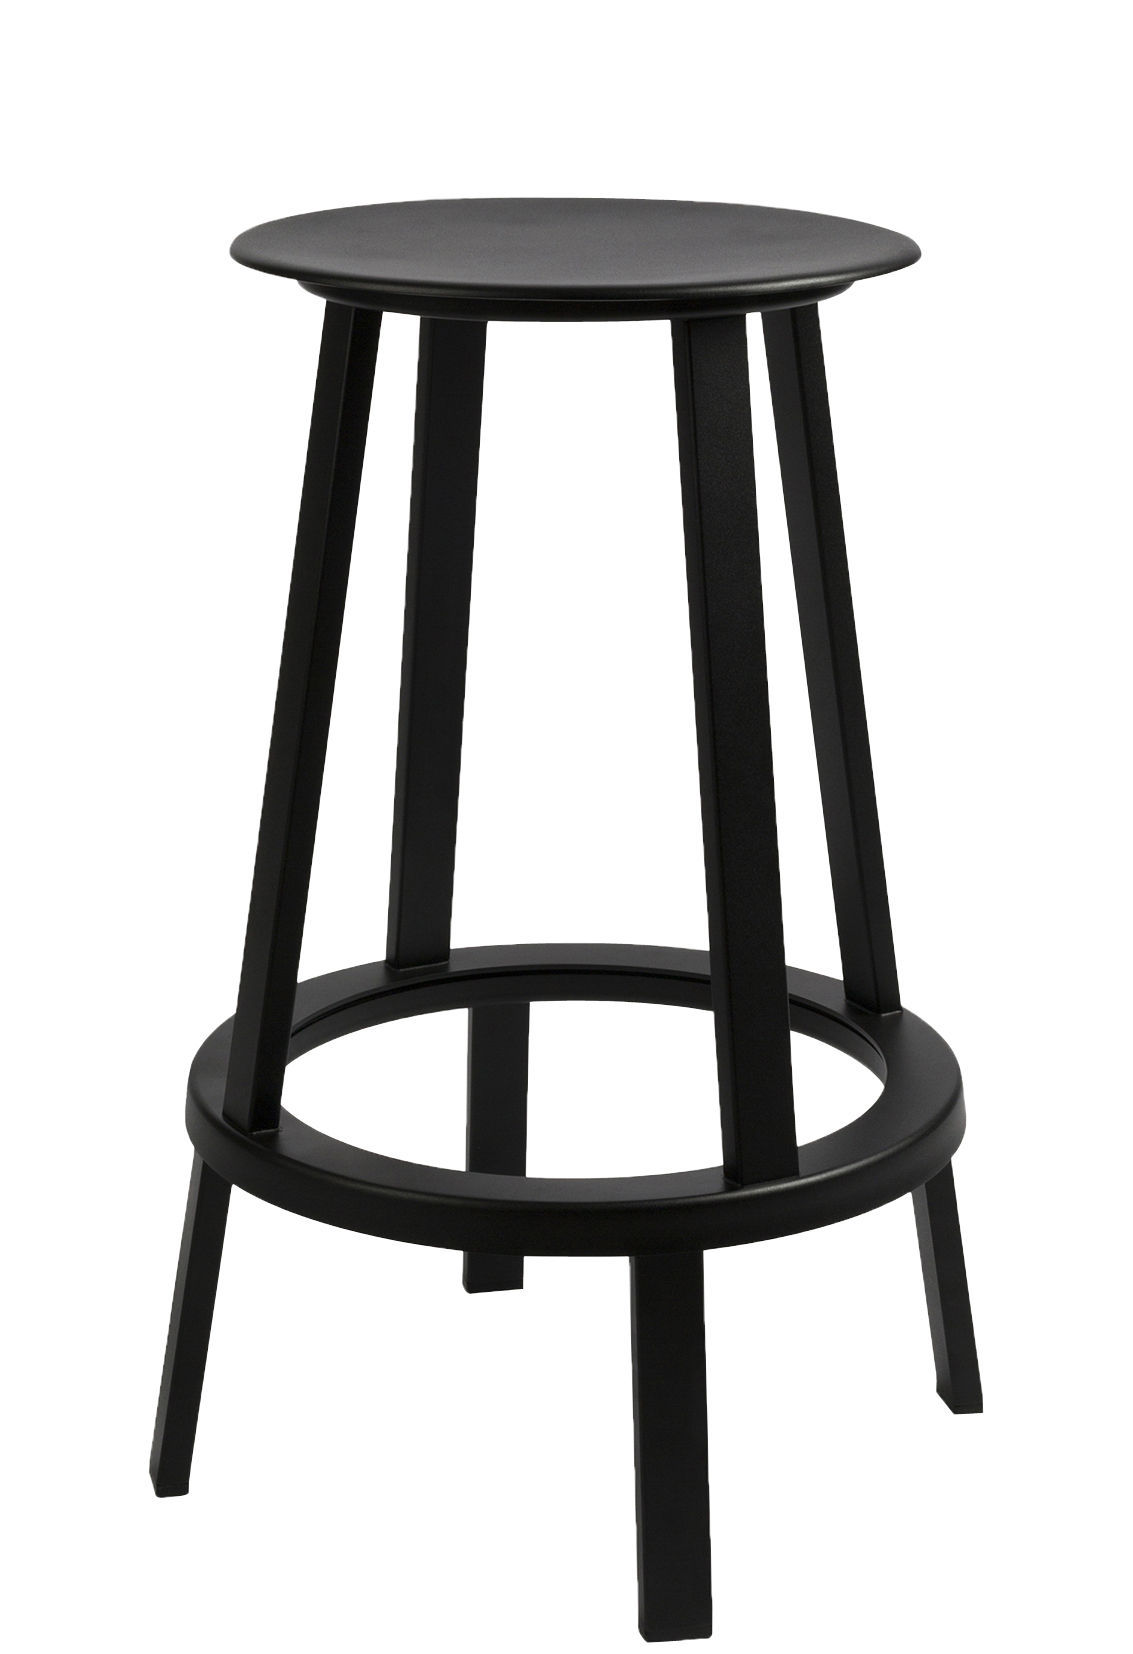 revolver swivel bar stool h 65 cm metal black by hay. Black Bedroom Furniture Sets. Home Design Ideas